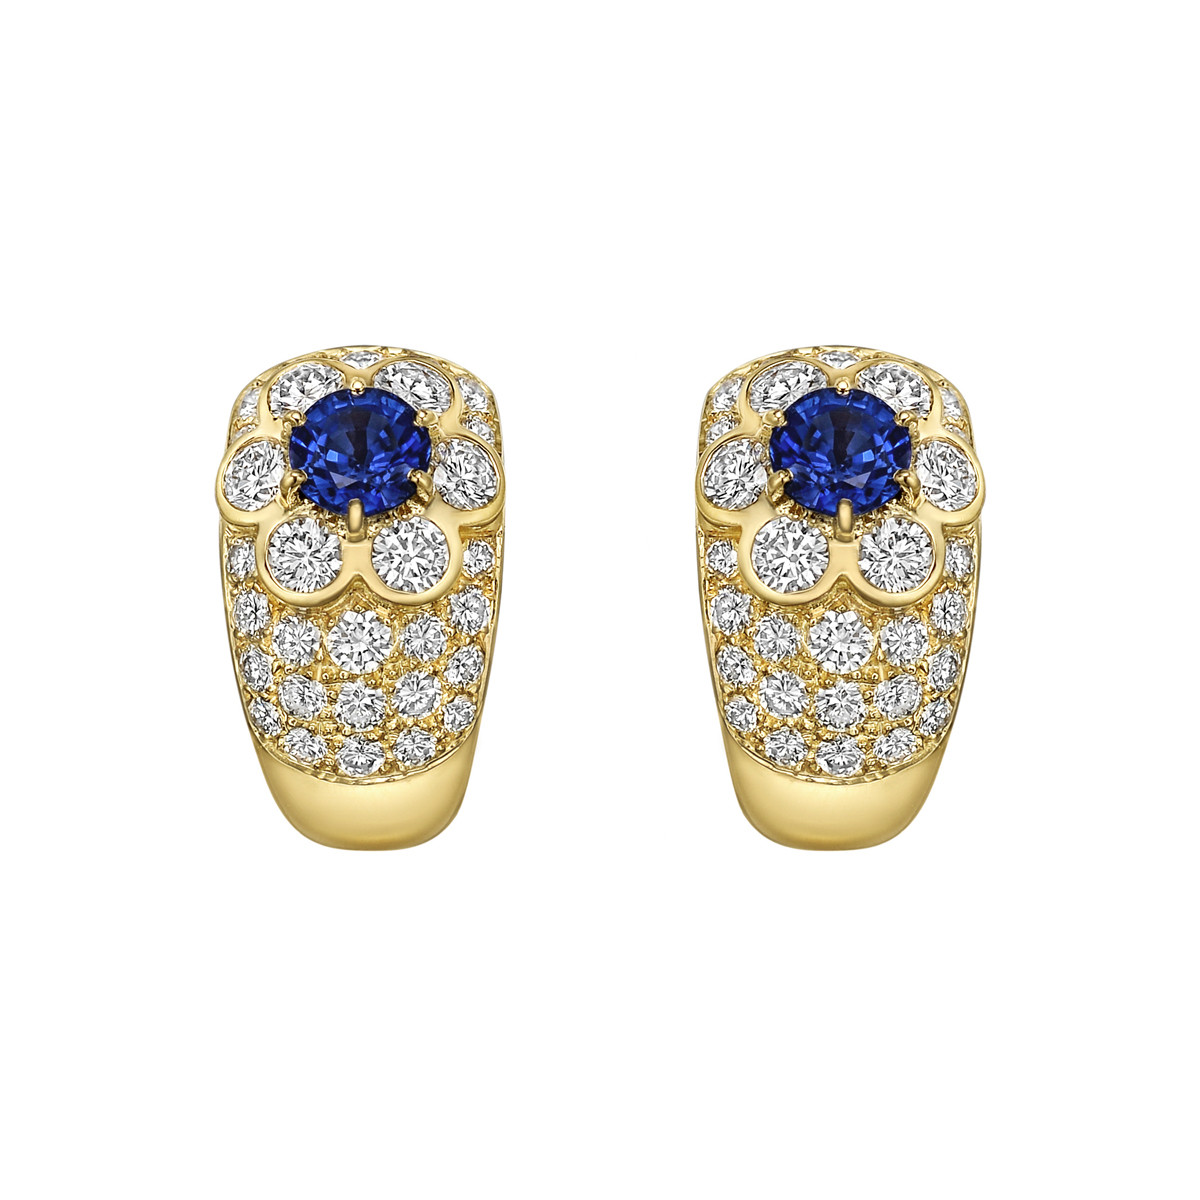 18k Yellow Gold, Sapphire & Diamond Flower Earclips